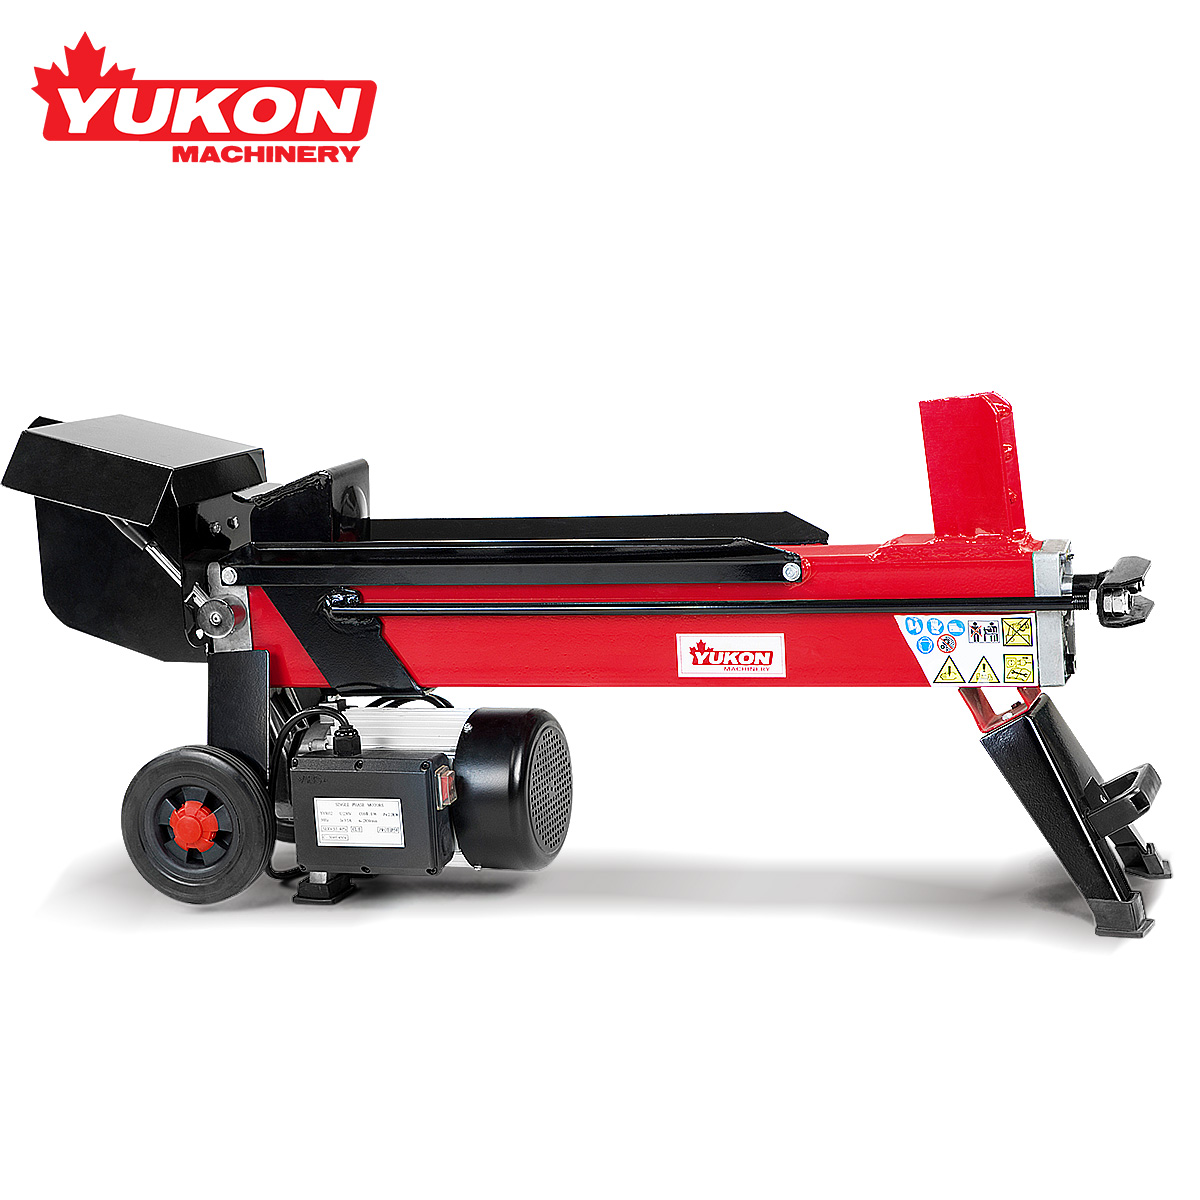 Yukon 7 Ton Electric Log Splitter